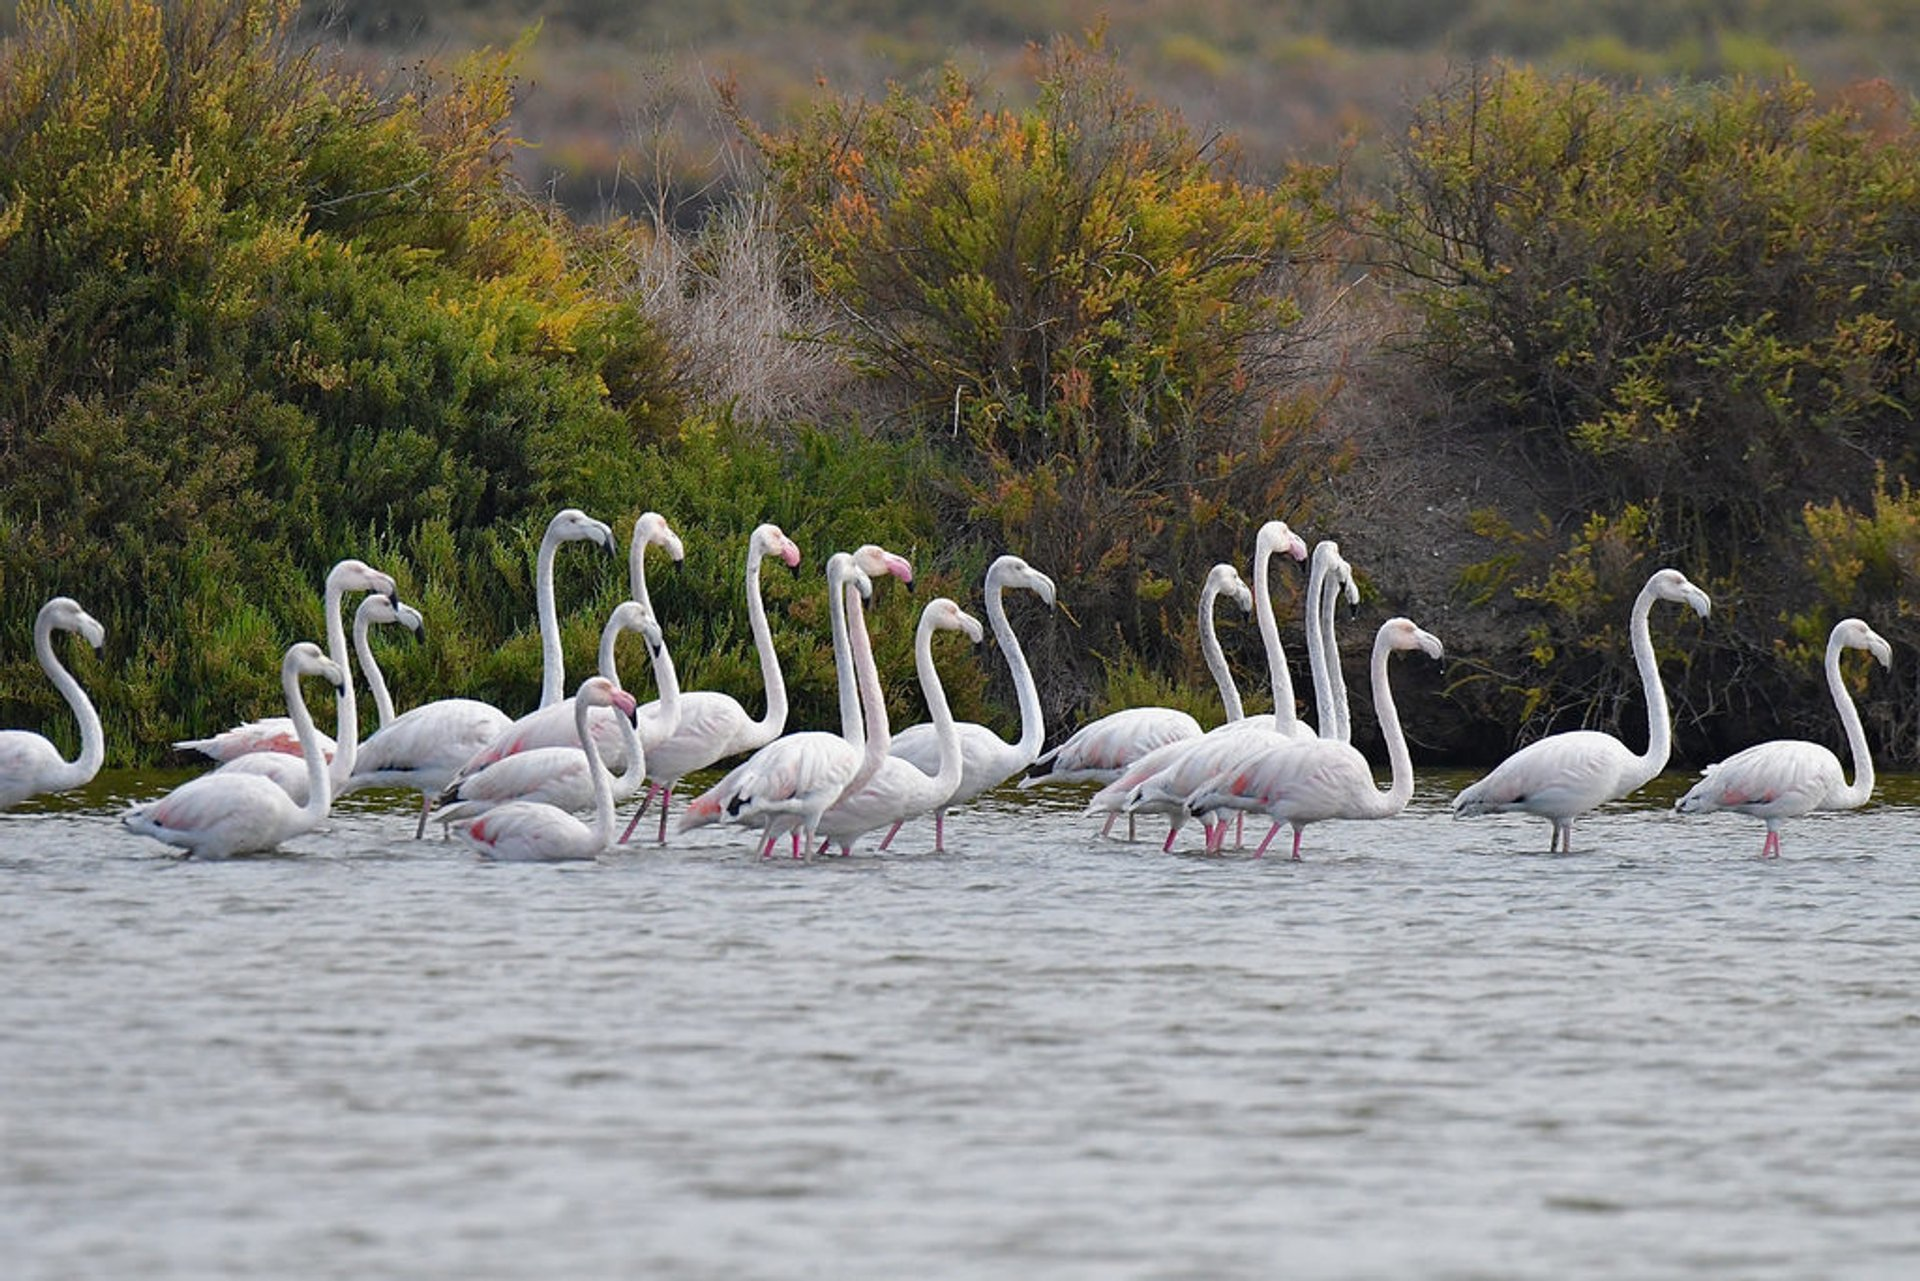 Flamingos in the Tagus Estuary Natural Reserve in Lisbon 2019 - Best Time